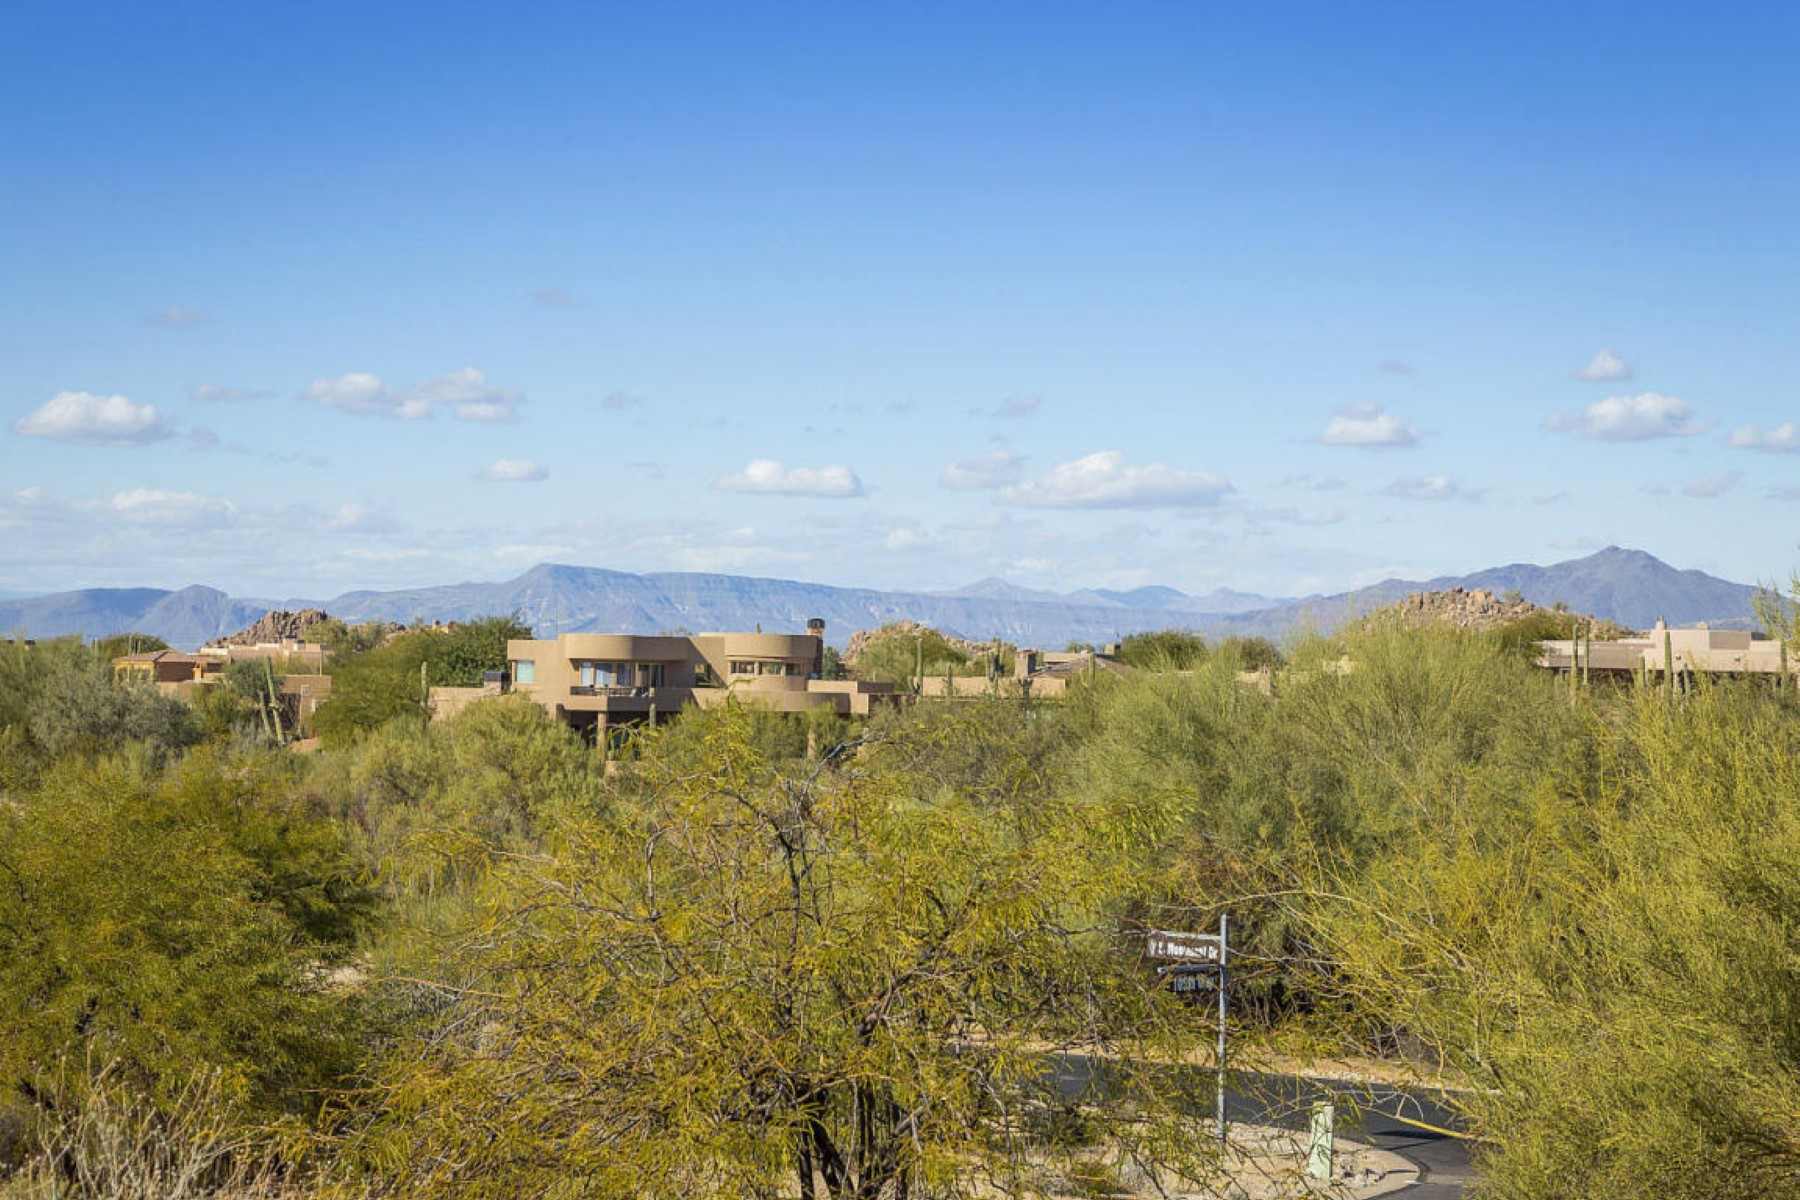 토지 용 매매 에 .61 Acre site available in guard gated Candlewood Estates 28841 N 105h Way #23 Scottsdale, 아리조나, 85262 미국